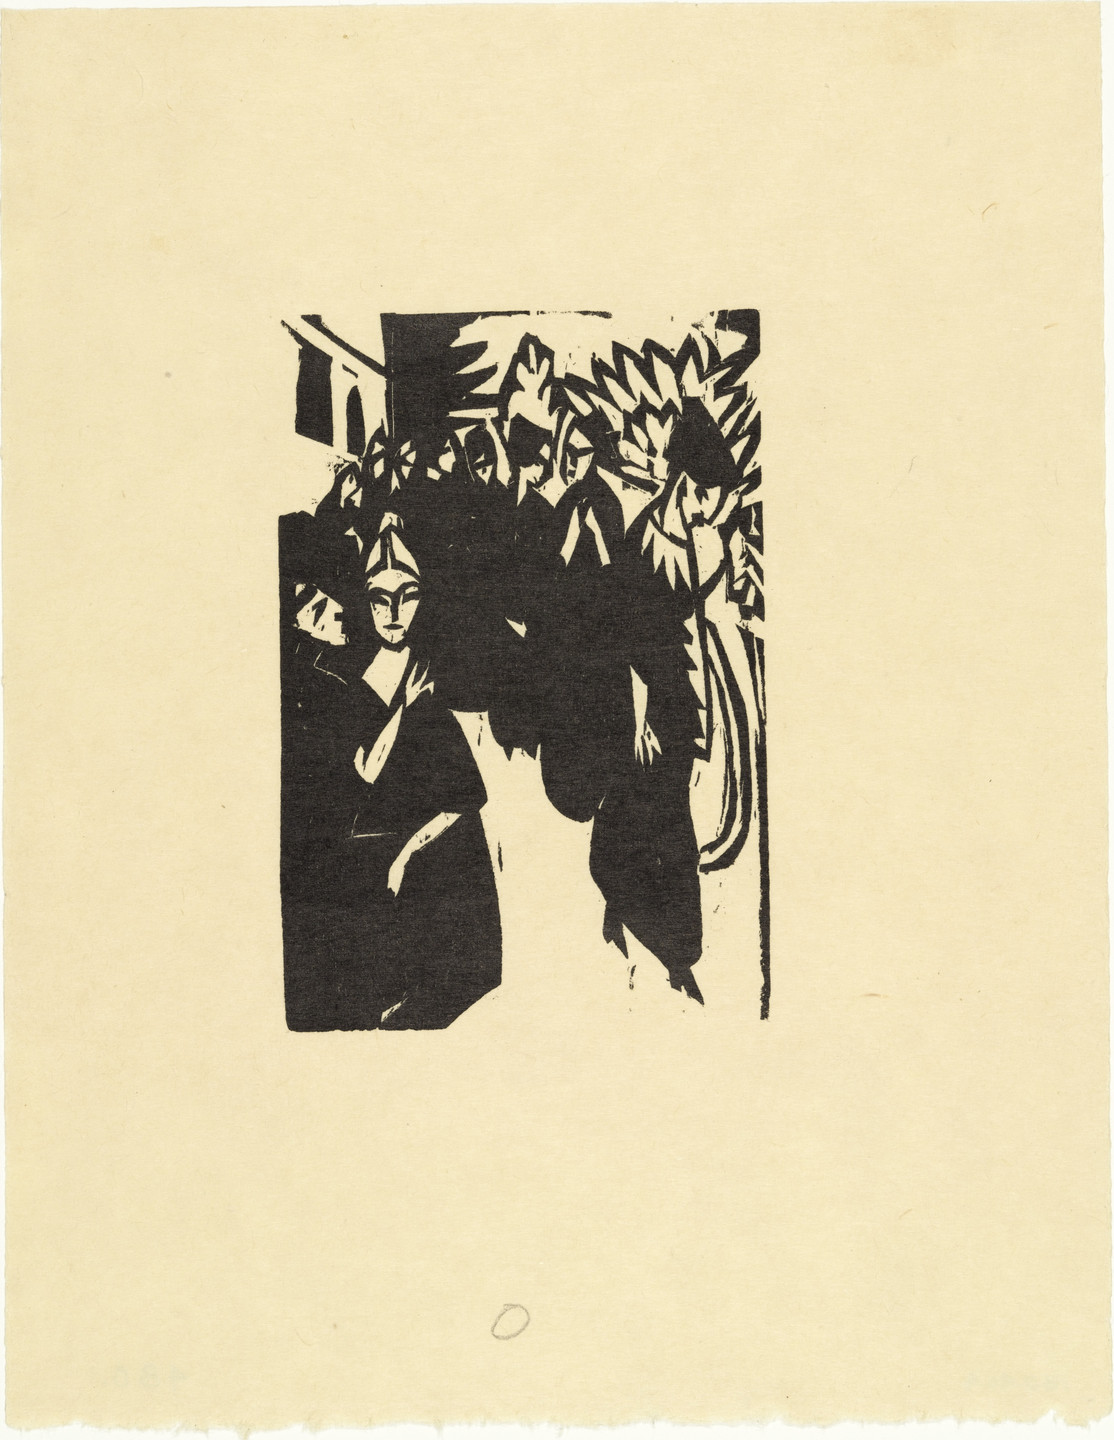 Ernst Ludwig Kirchner. Canoness in the Garden (Das Stiftsfräulein im Garten) from the illustrated book Das Stiftsfräulein und der Tod (The Canoness and Death). (1912, published 1913)